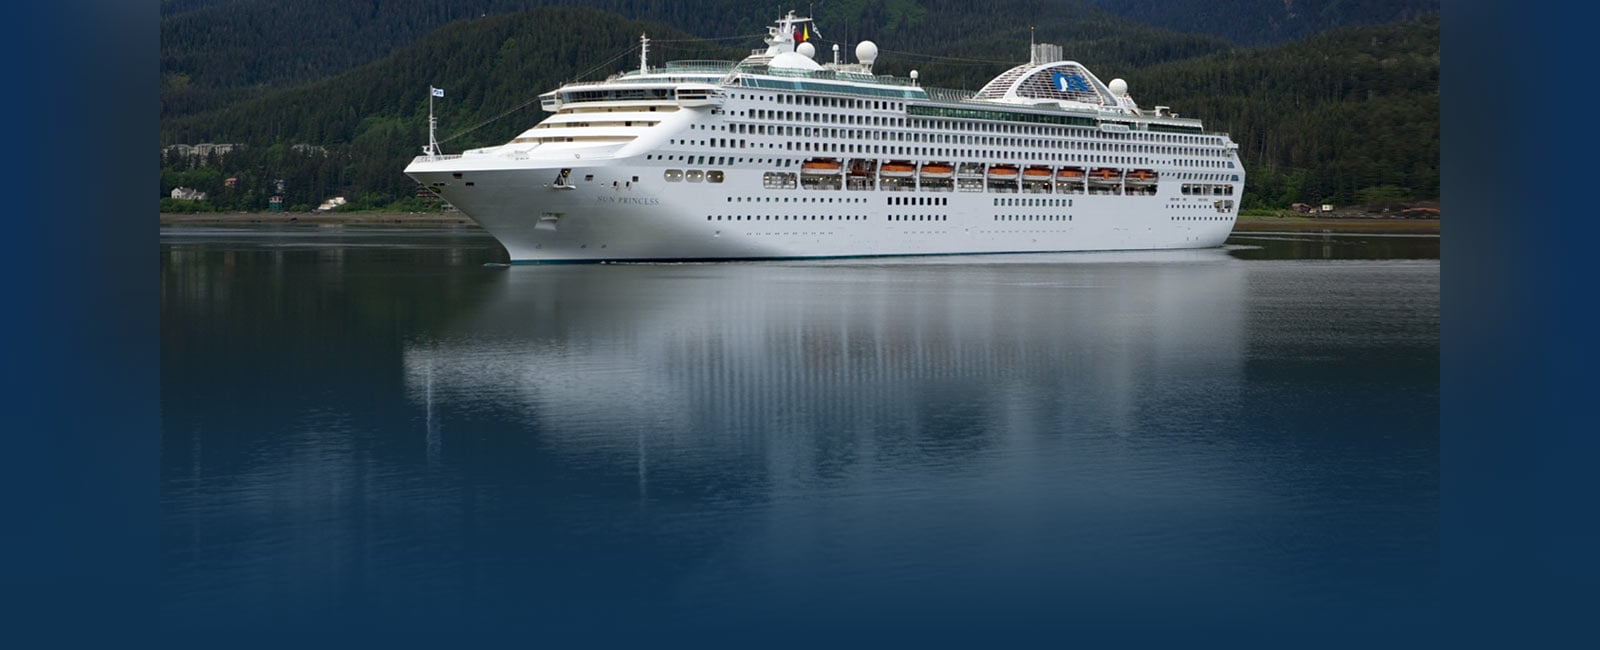 Star princess deck plans ships learn